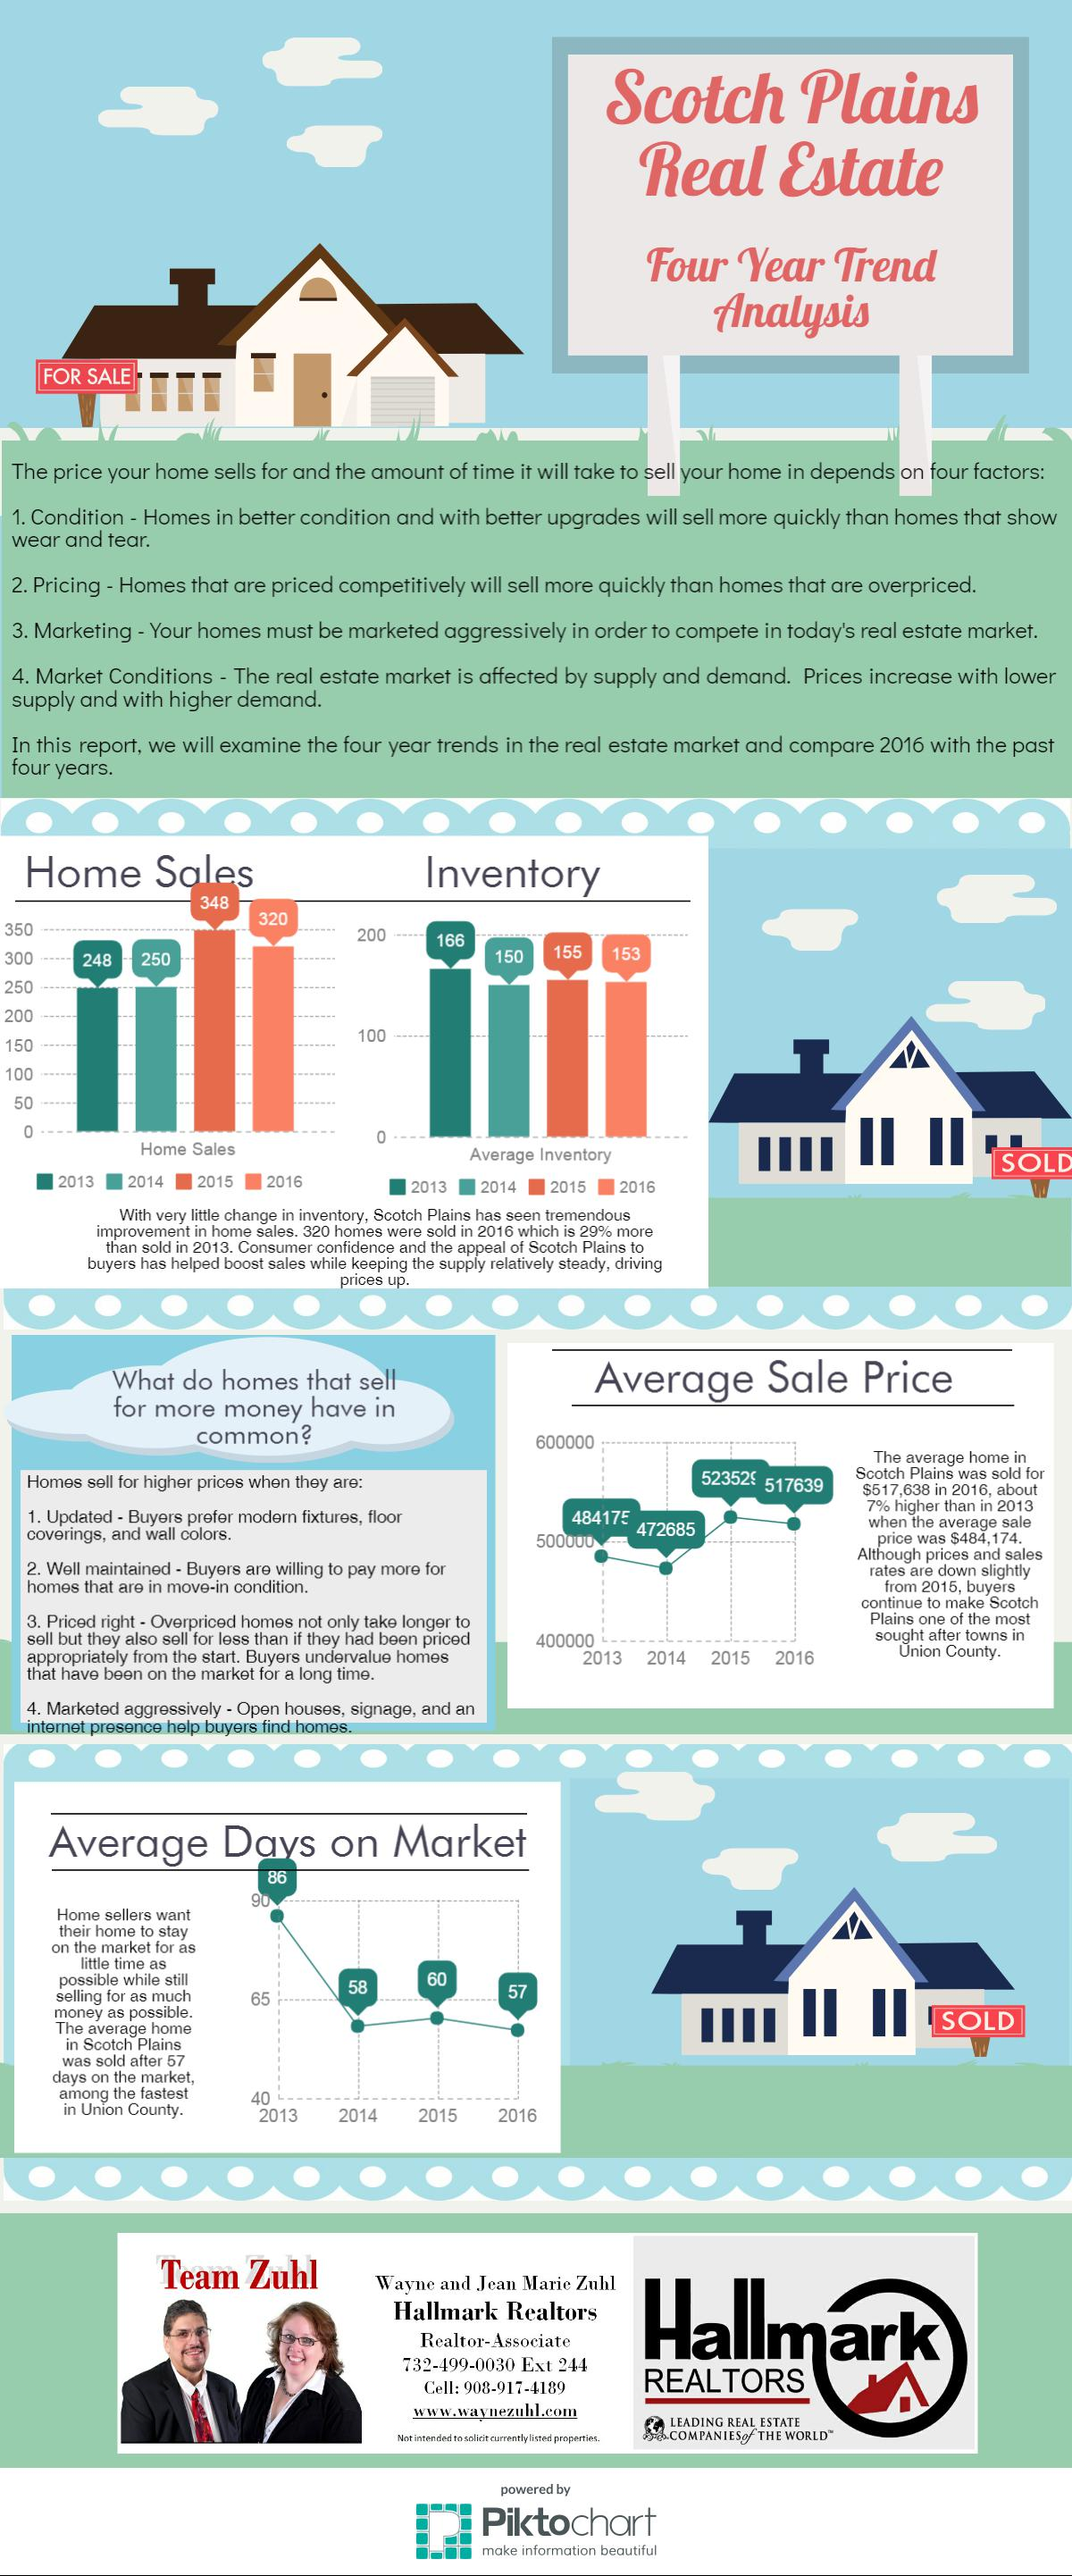 Scotch Plains year end real estate trend analysis